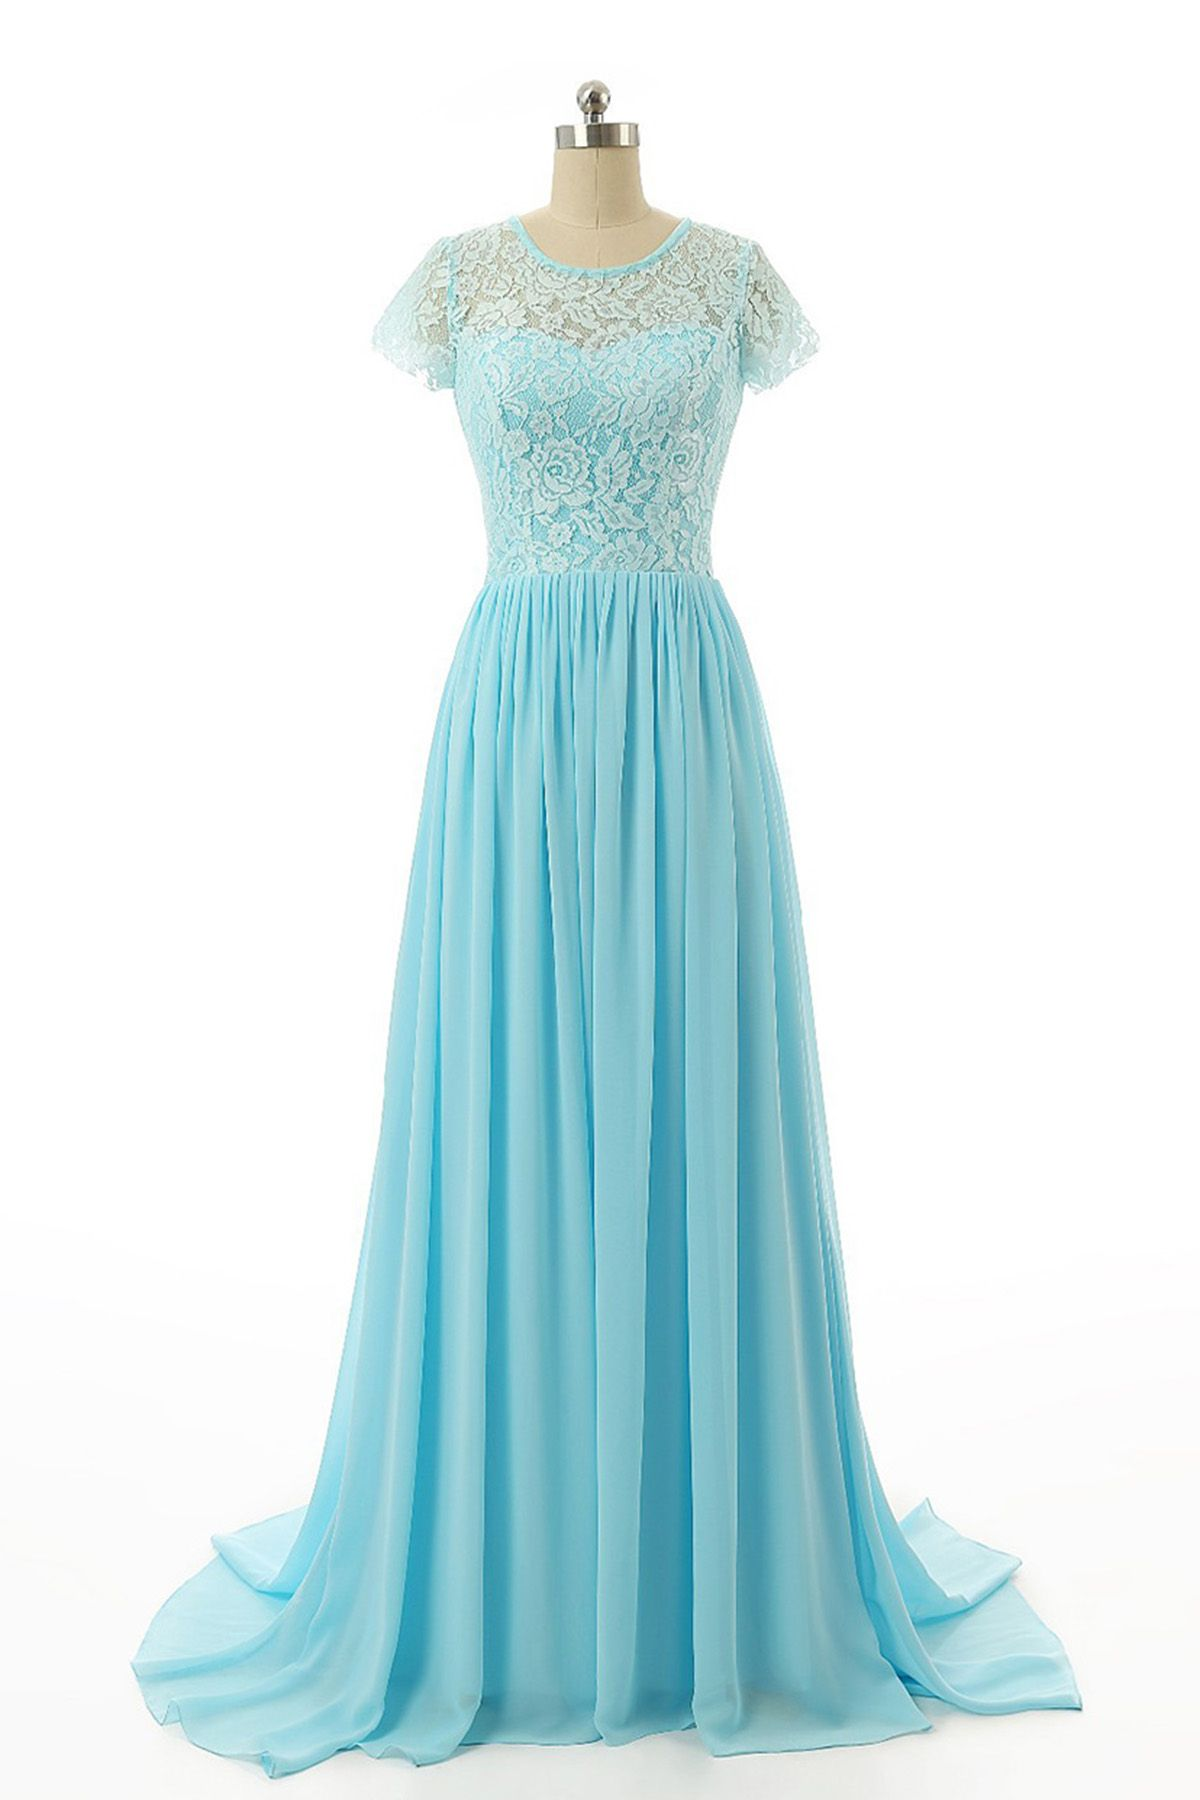 Simple ice blue chiffon long prom dress lace top bridesmaid dress